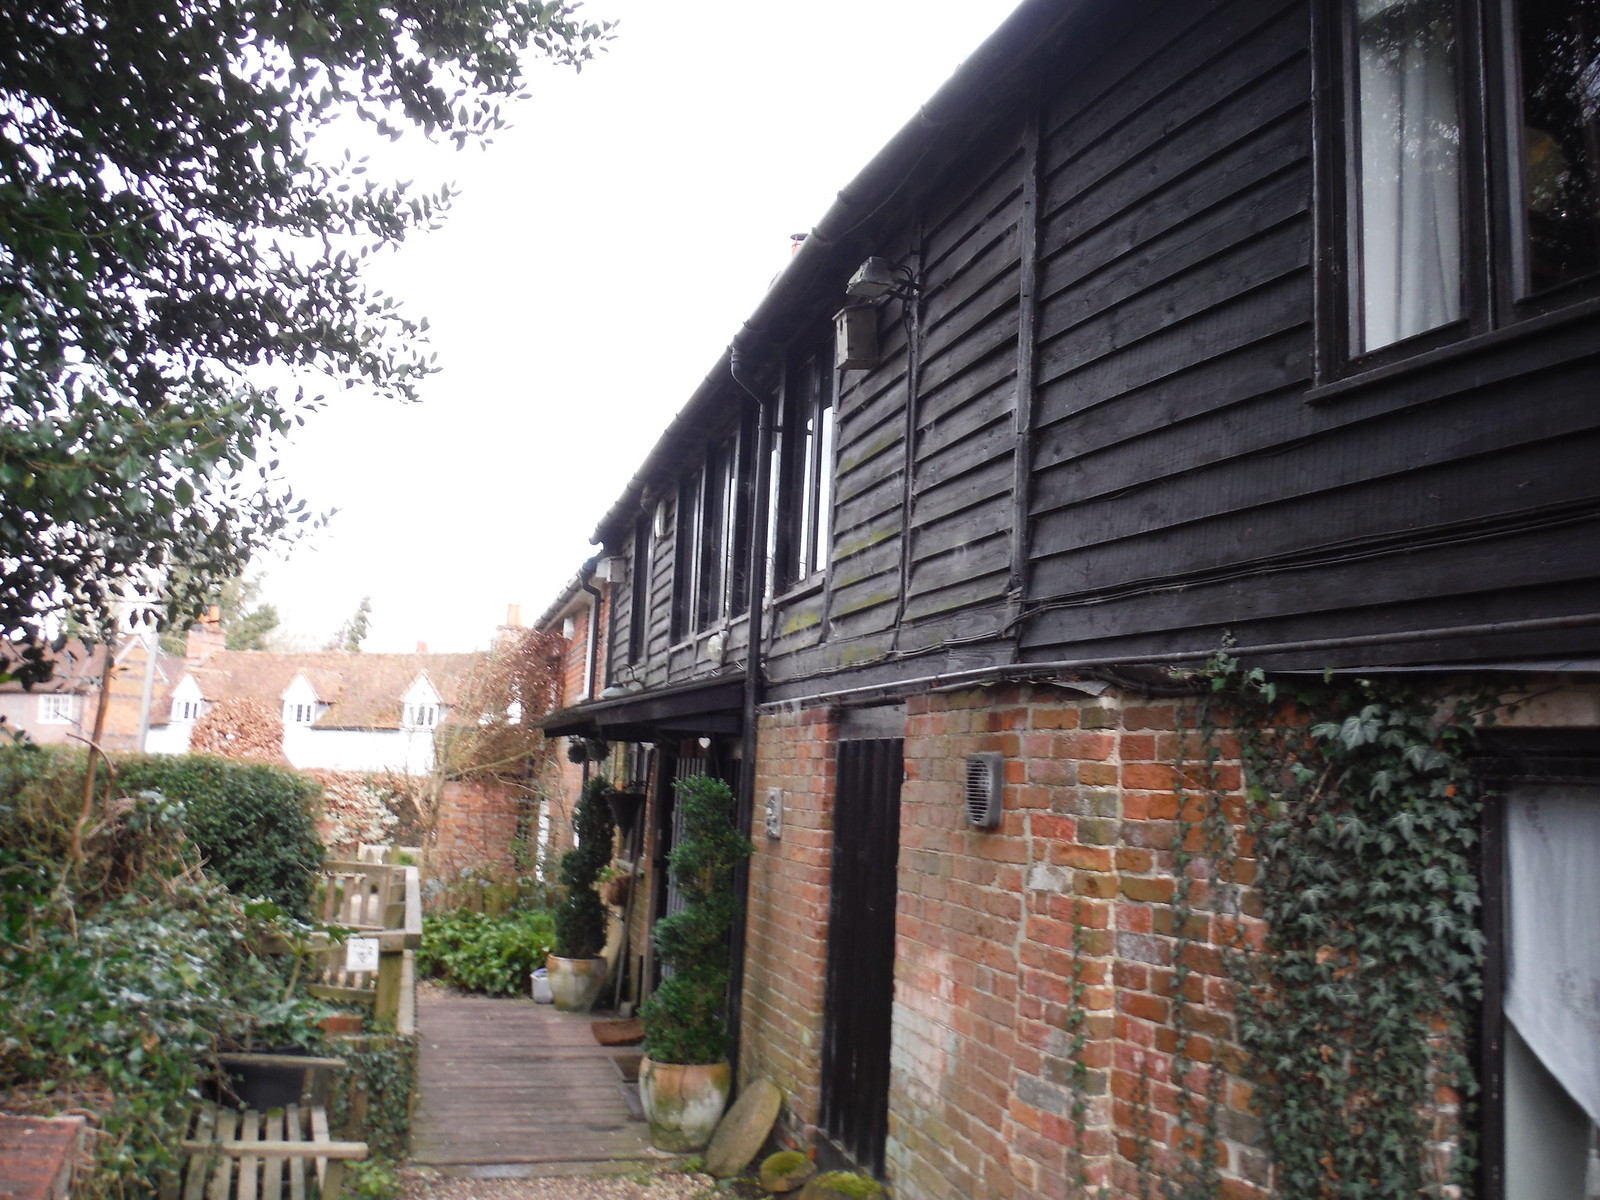 The Mill house, Stanford Dingley SWC Walk 117 Aldermaston to Woolhampton (via Stanford Dingley)